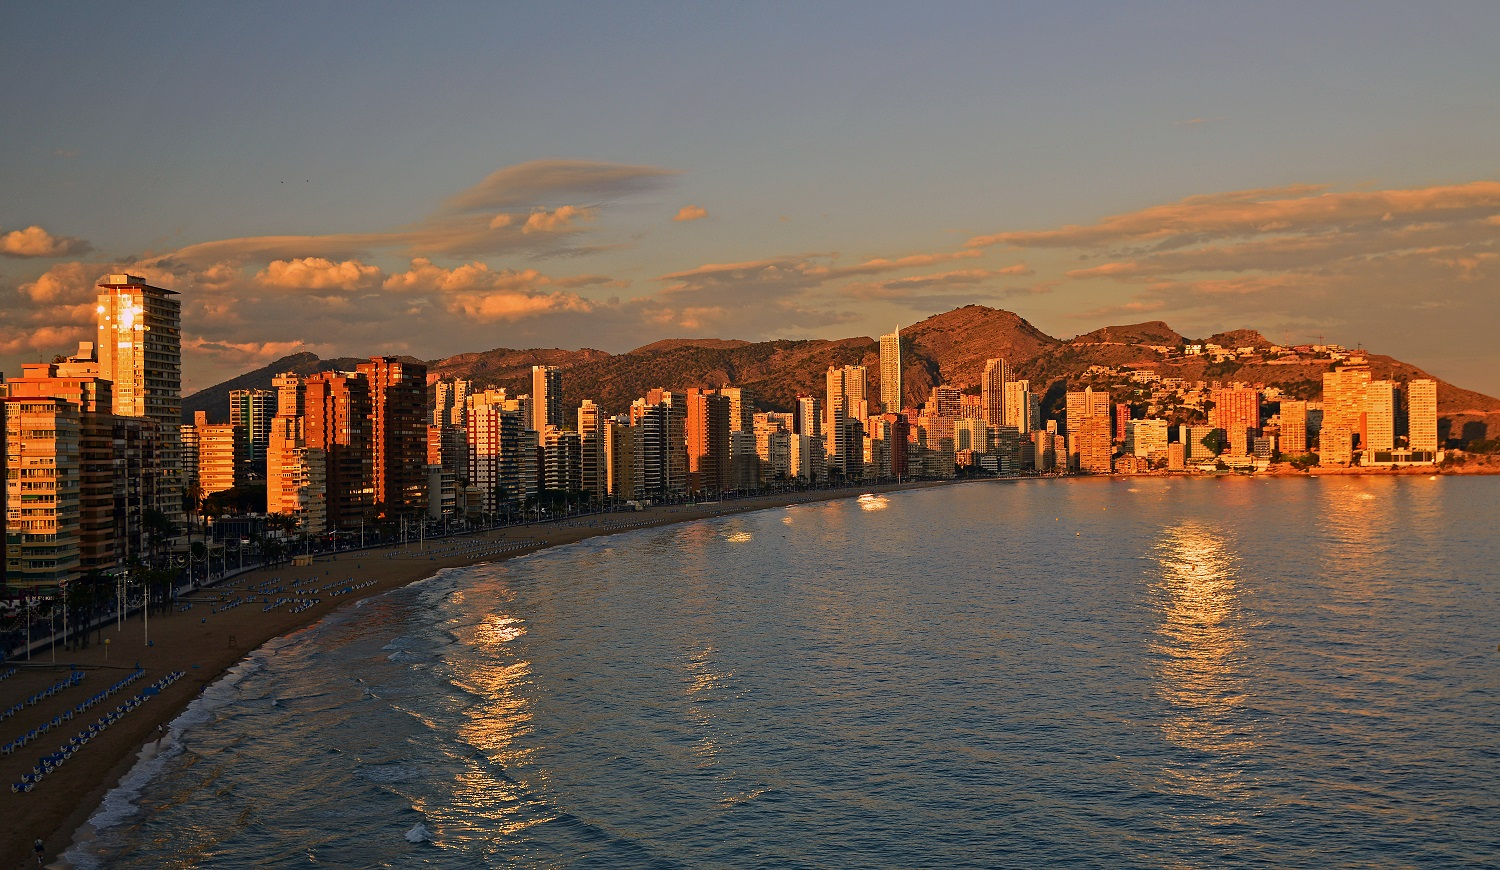 Benidorm at sunset